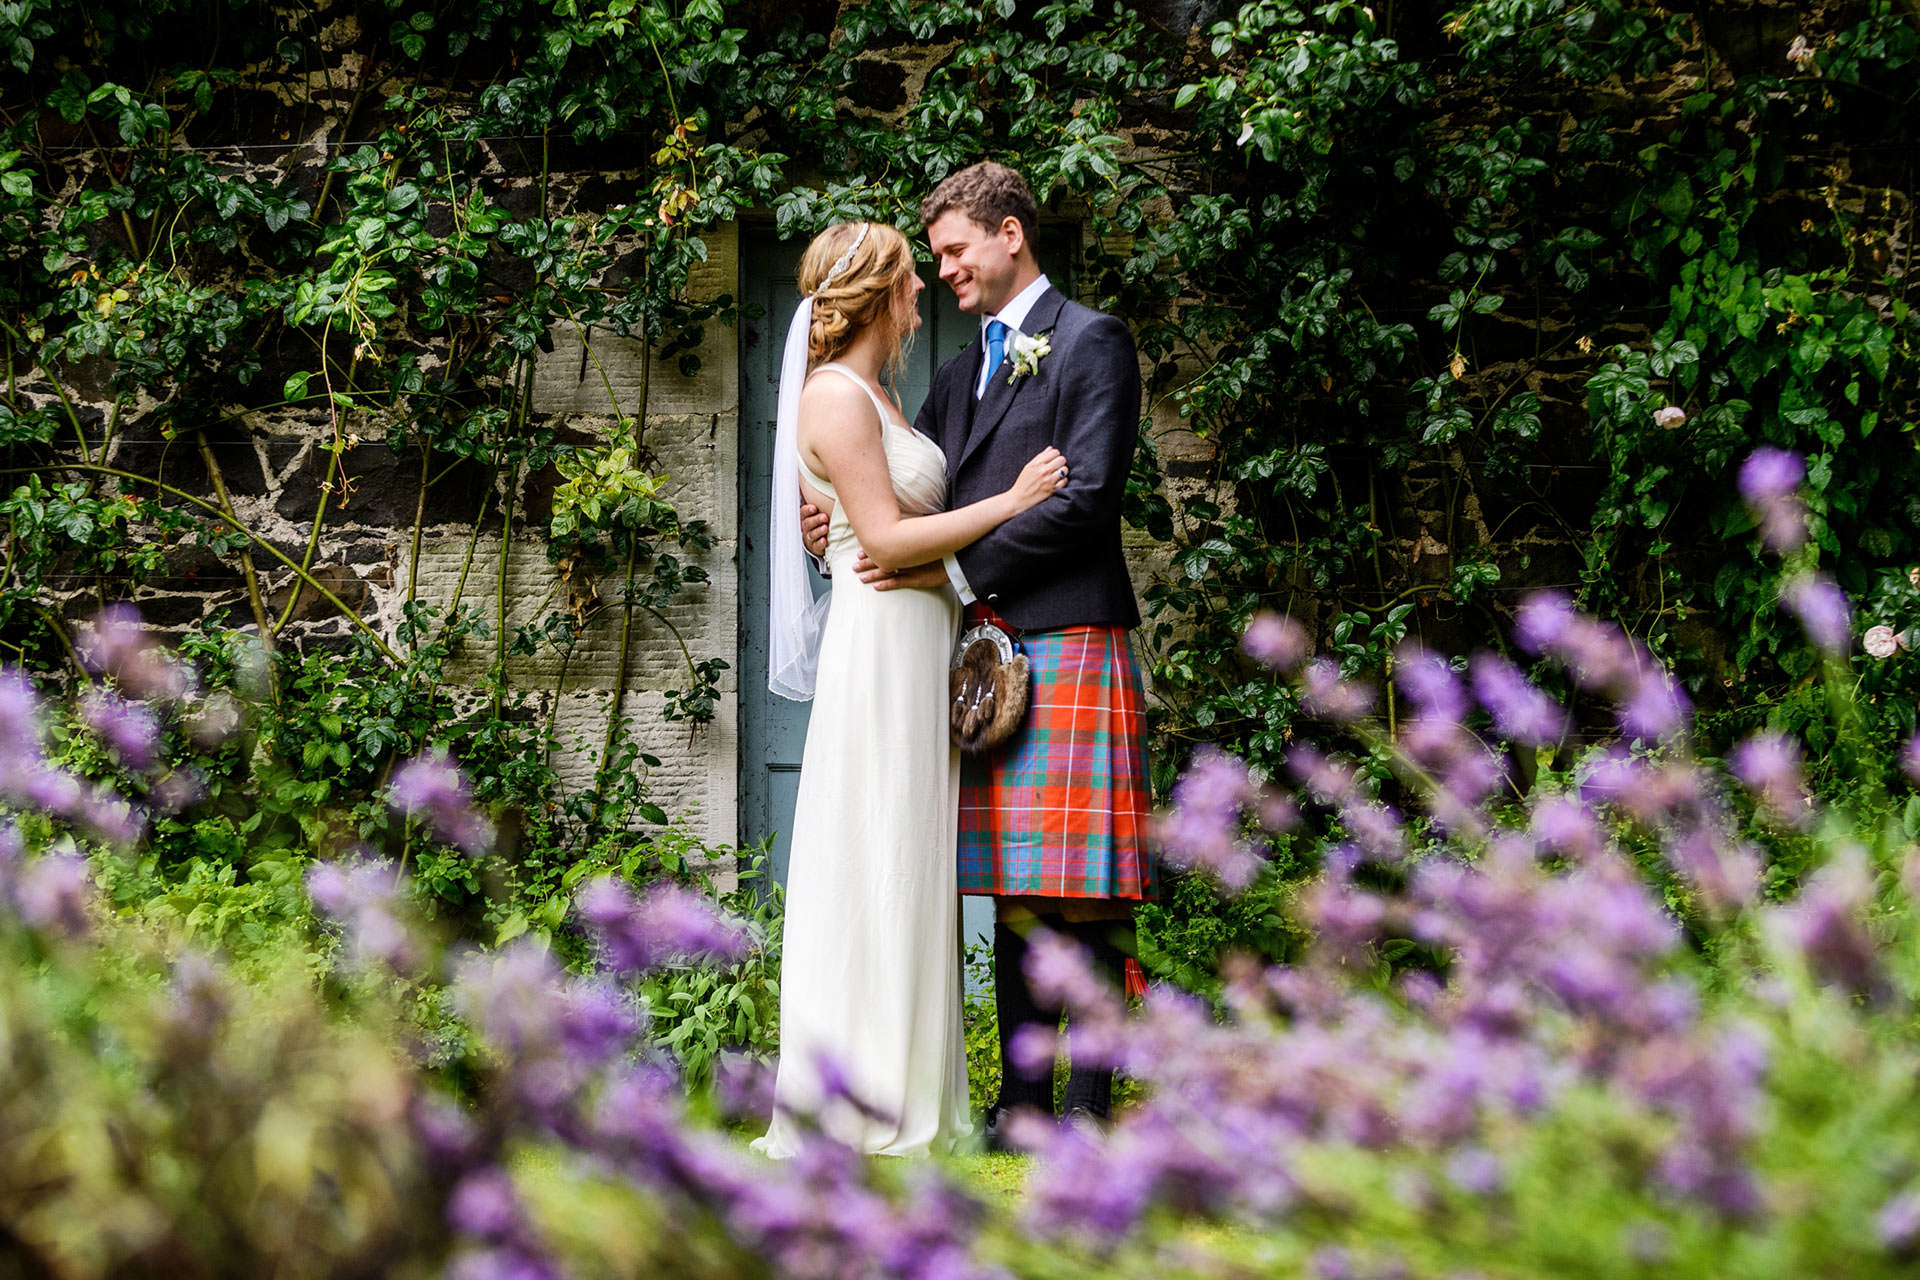 Suzanne Black, Wedding Photographer in Scotland